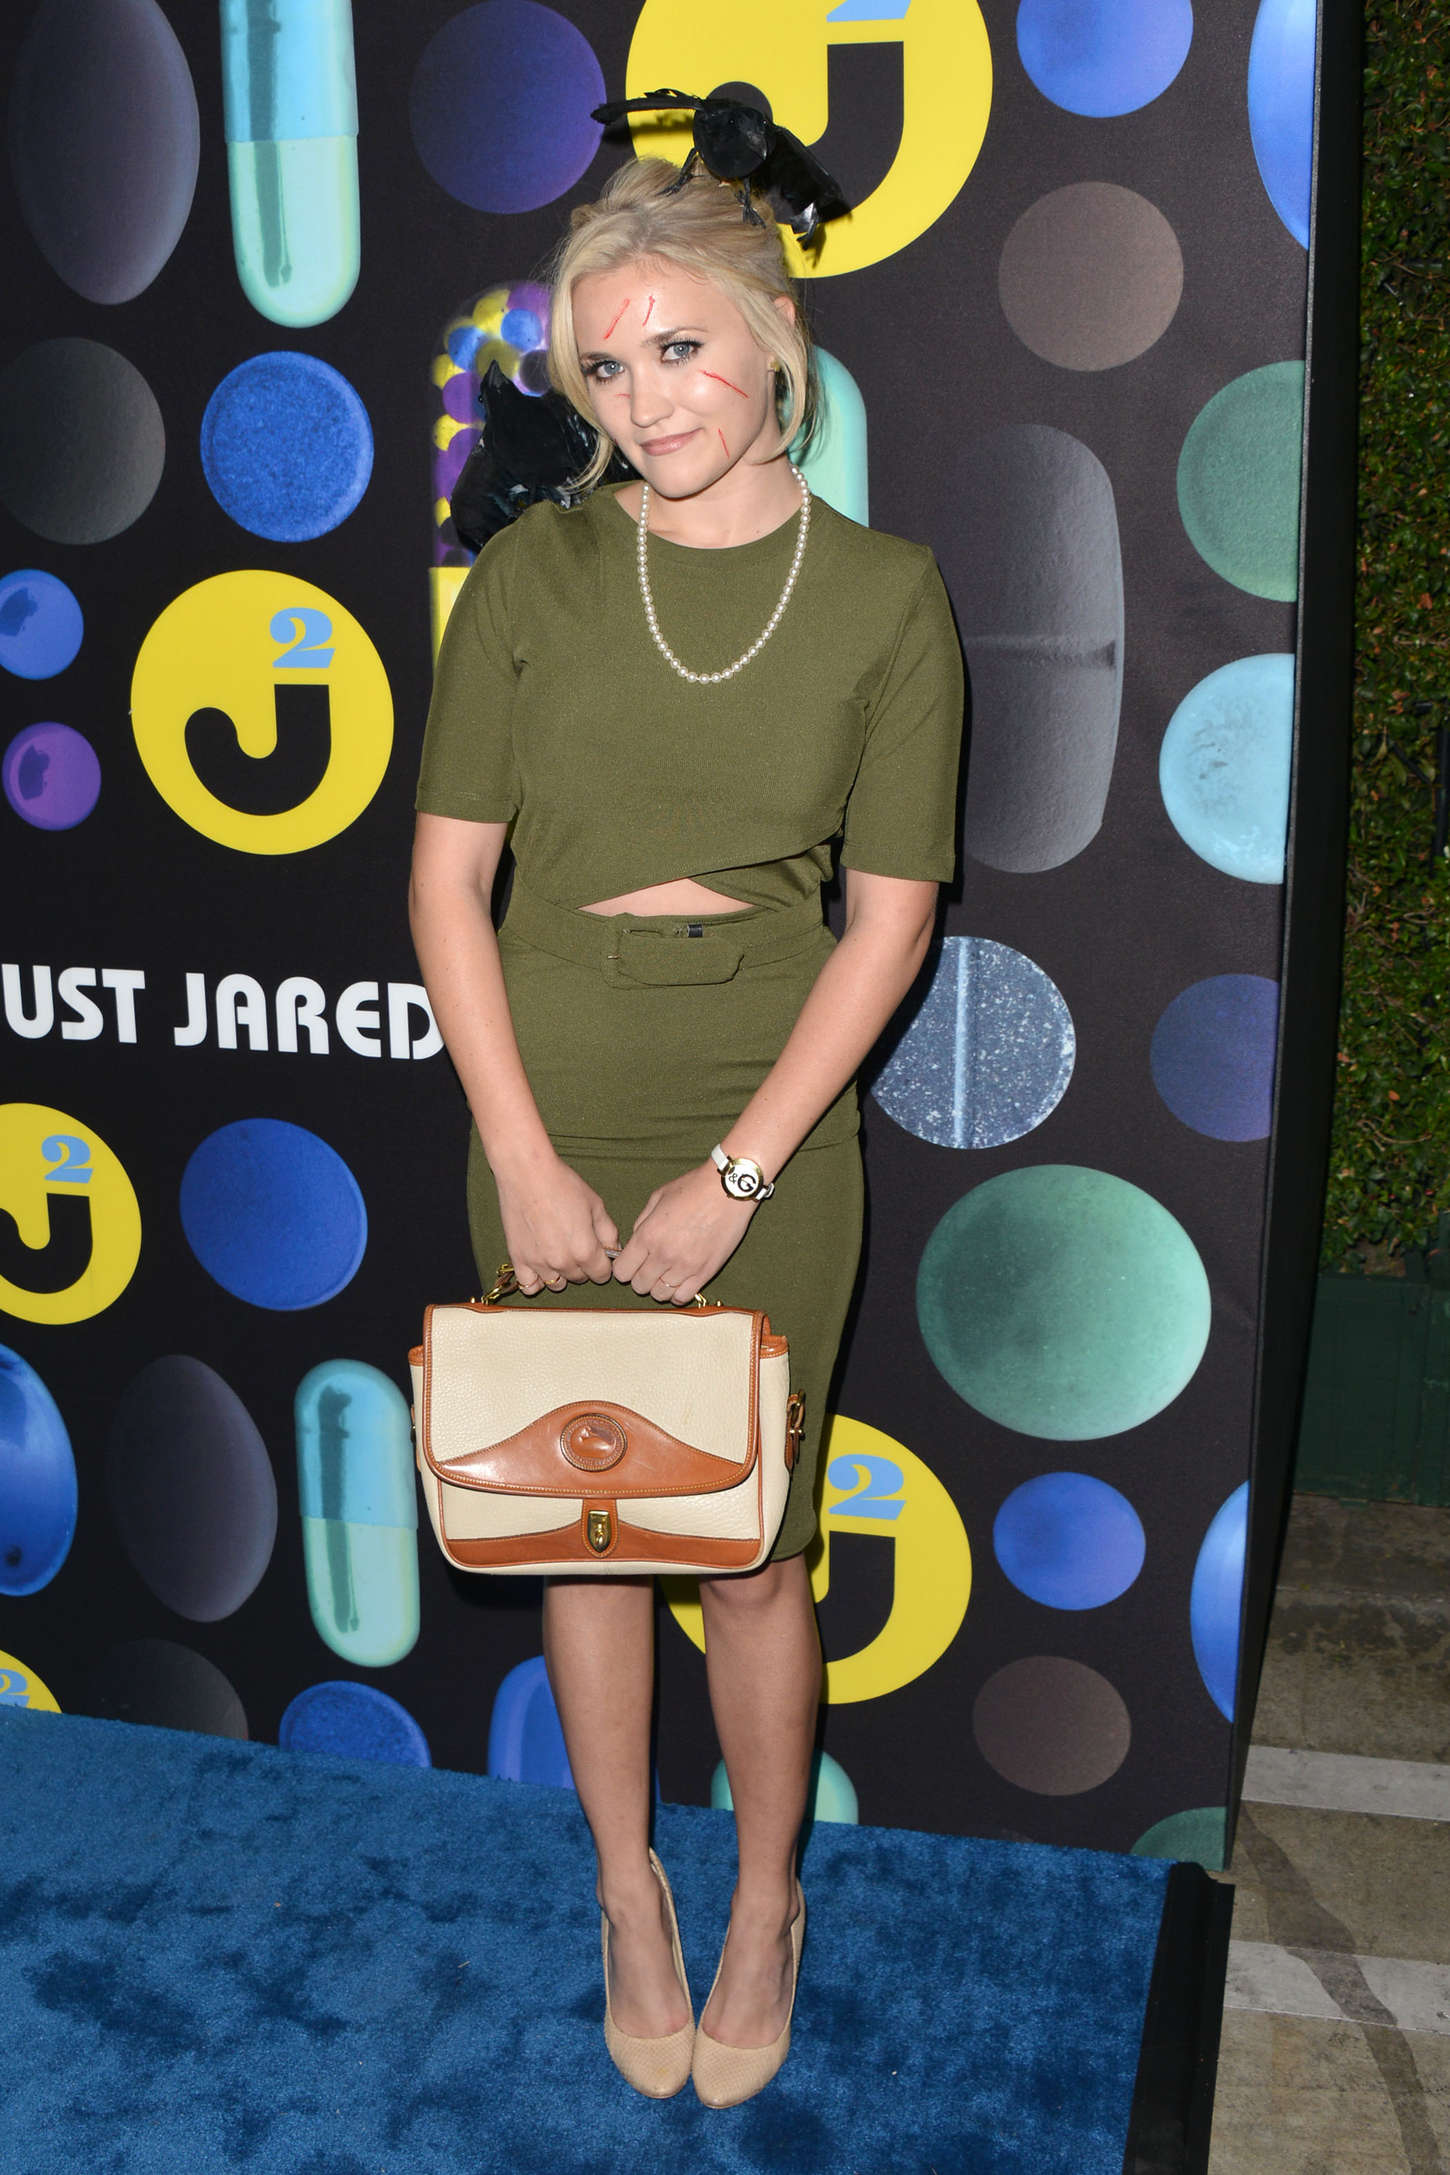 Emily Osment Just Jared Halloween Party in Hollywood